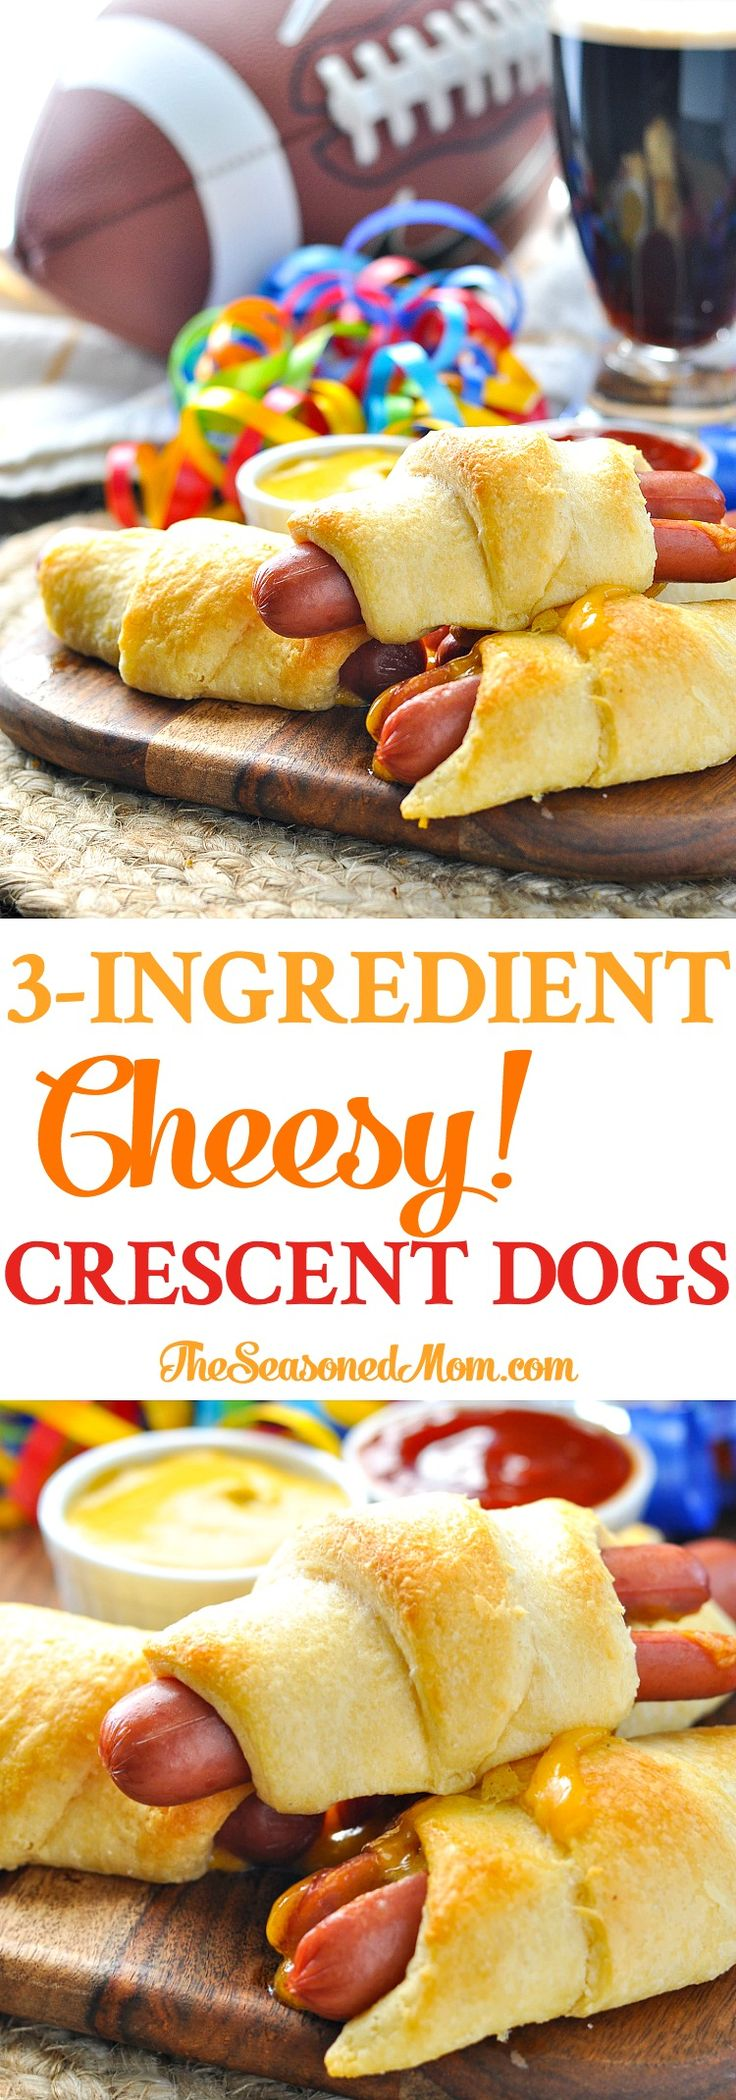 Long vertical image of hotdogs wrapped in crescent rolls.